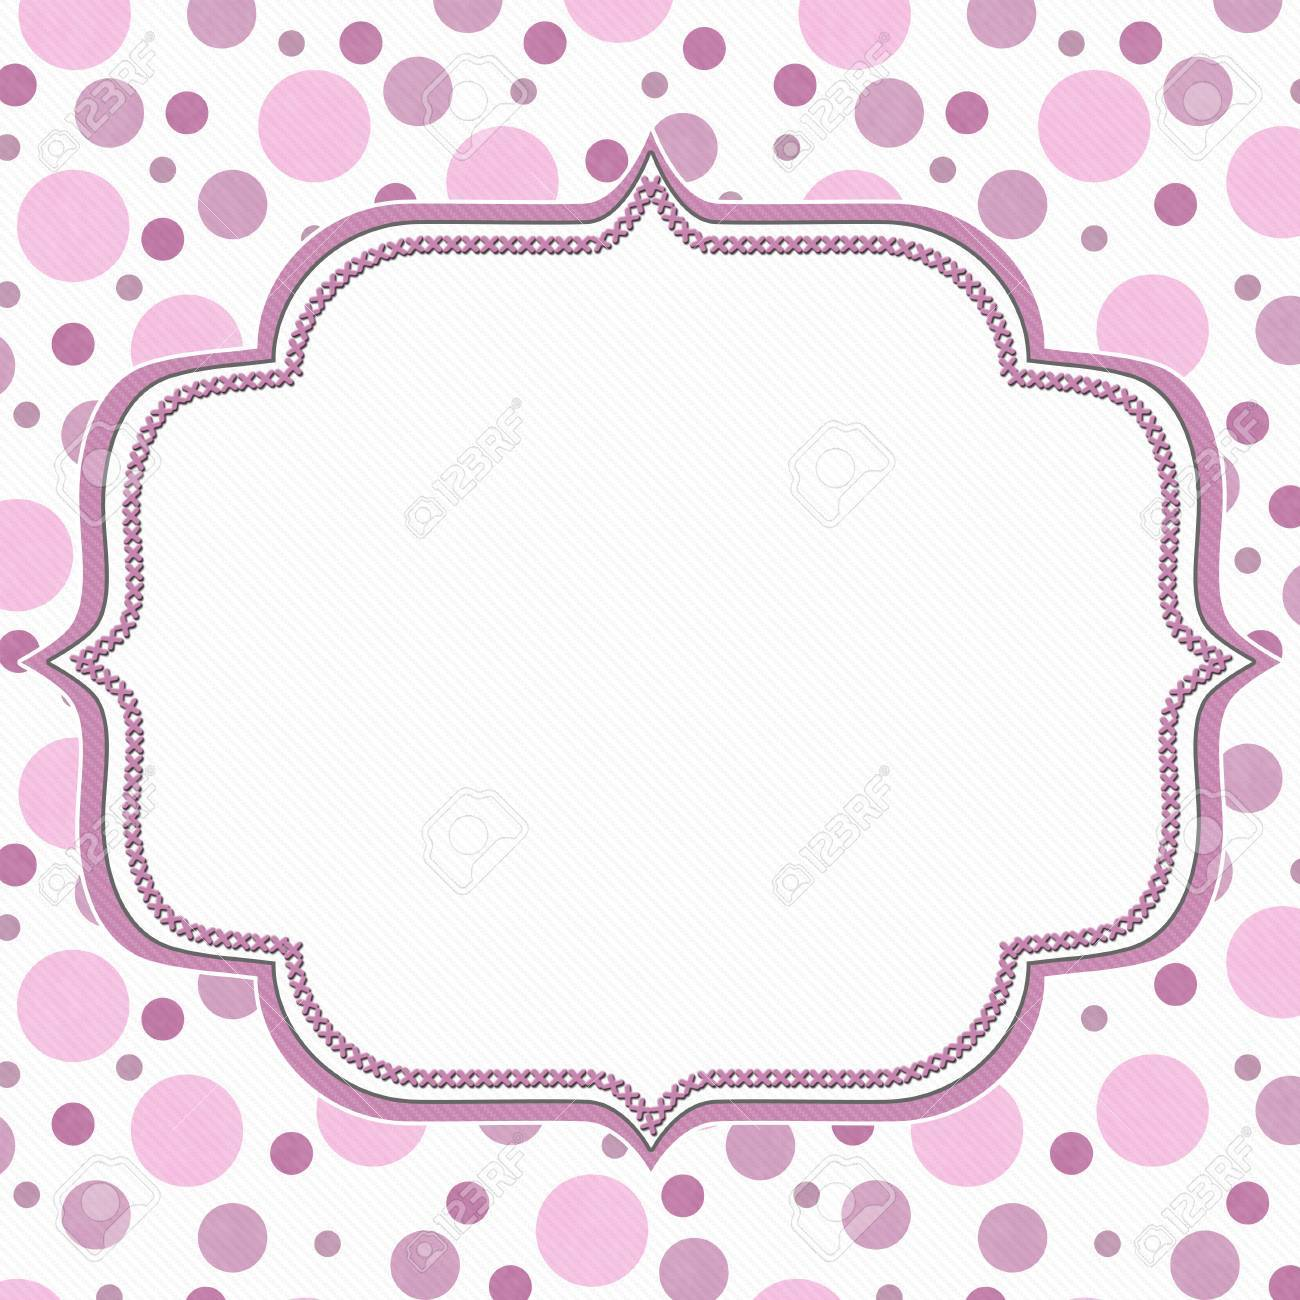 Pink And White Polka Dot Frame With Embroidery Stitches Background ...